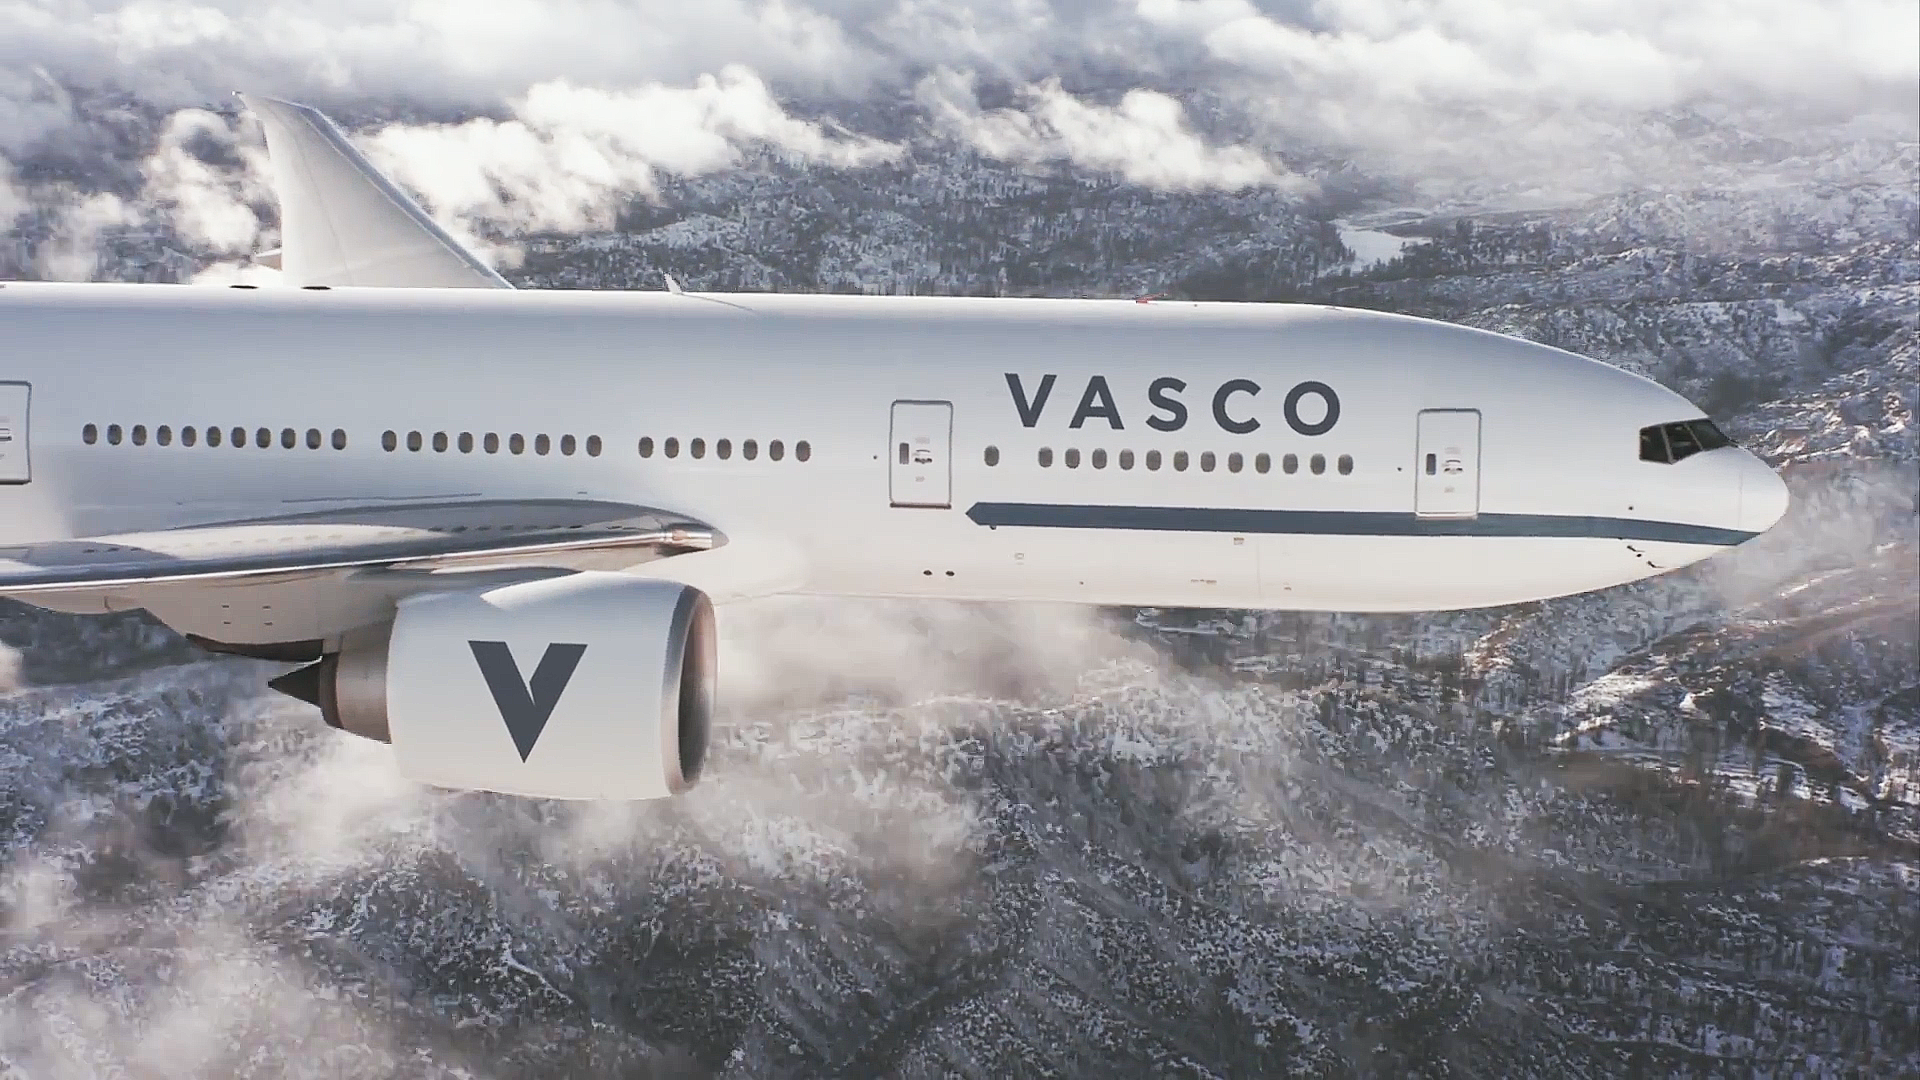 Vasco-airplane